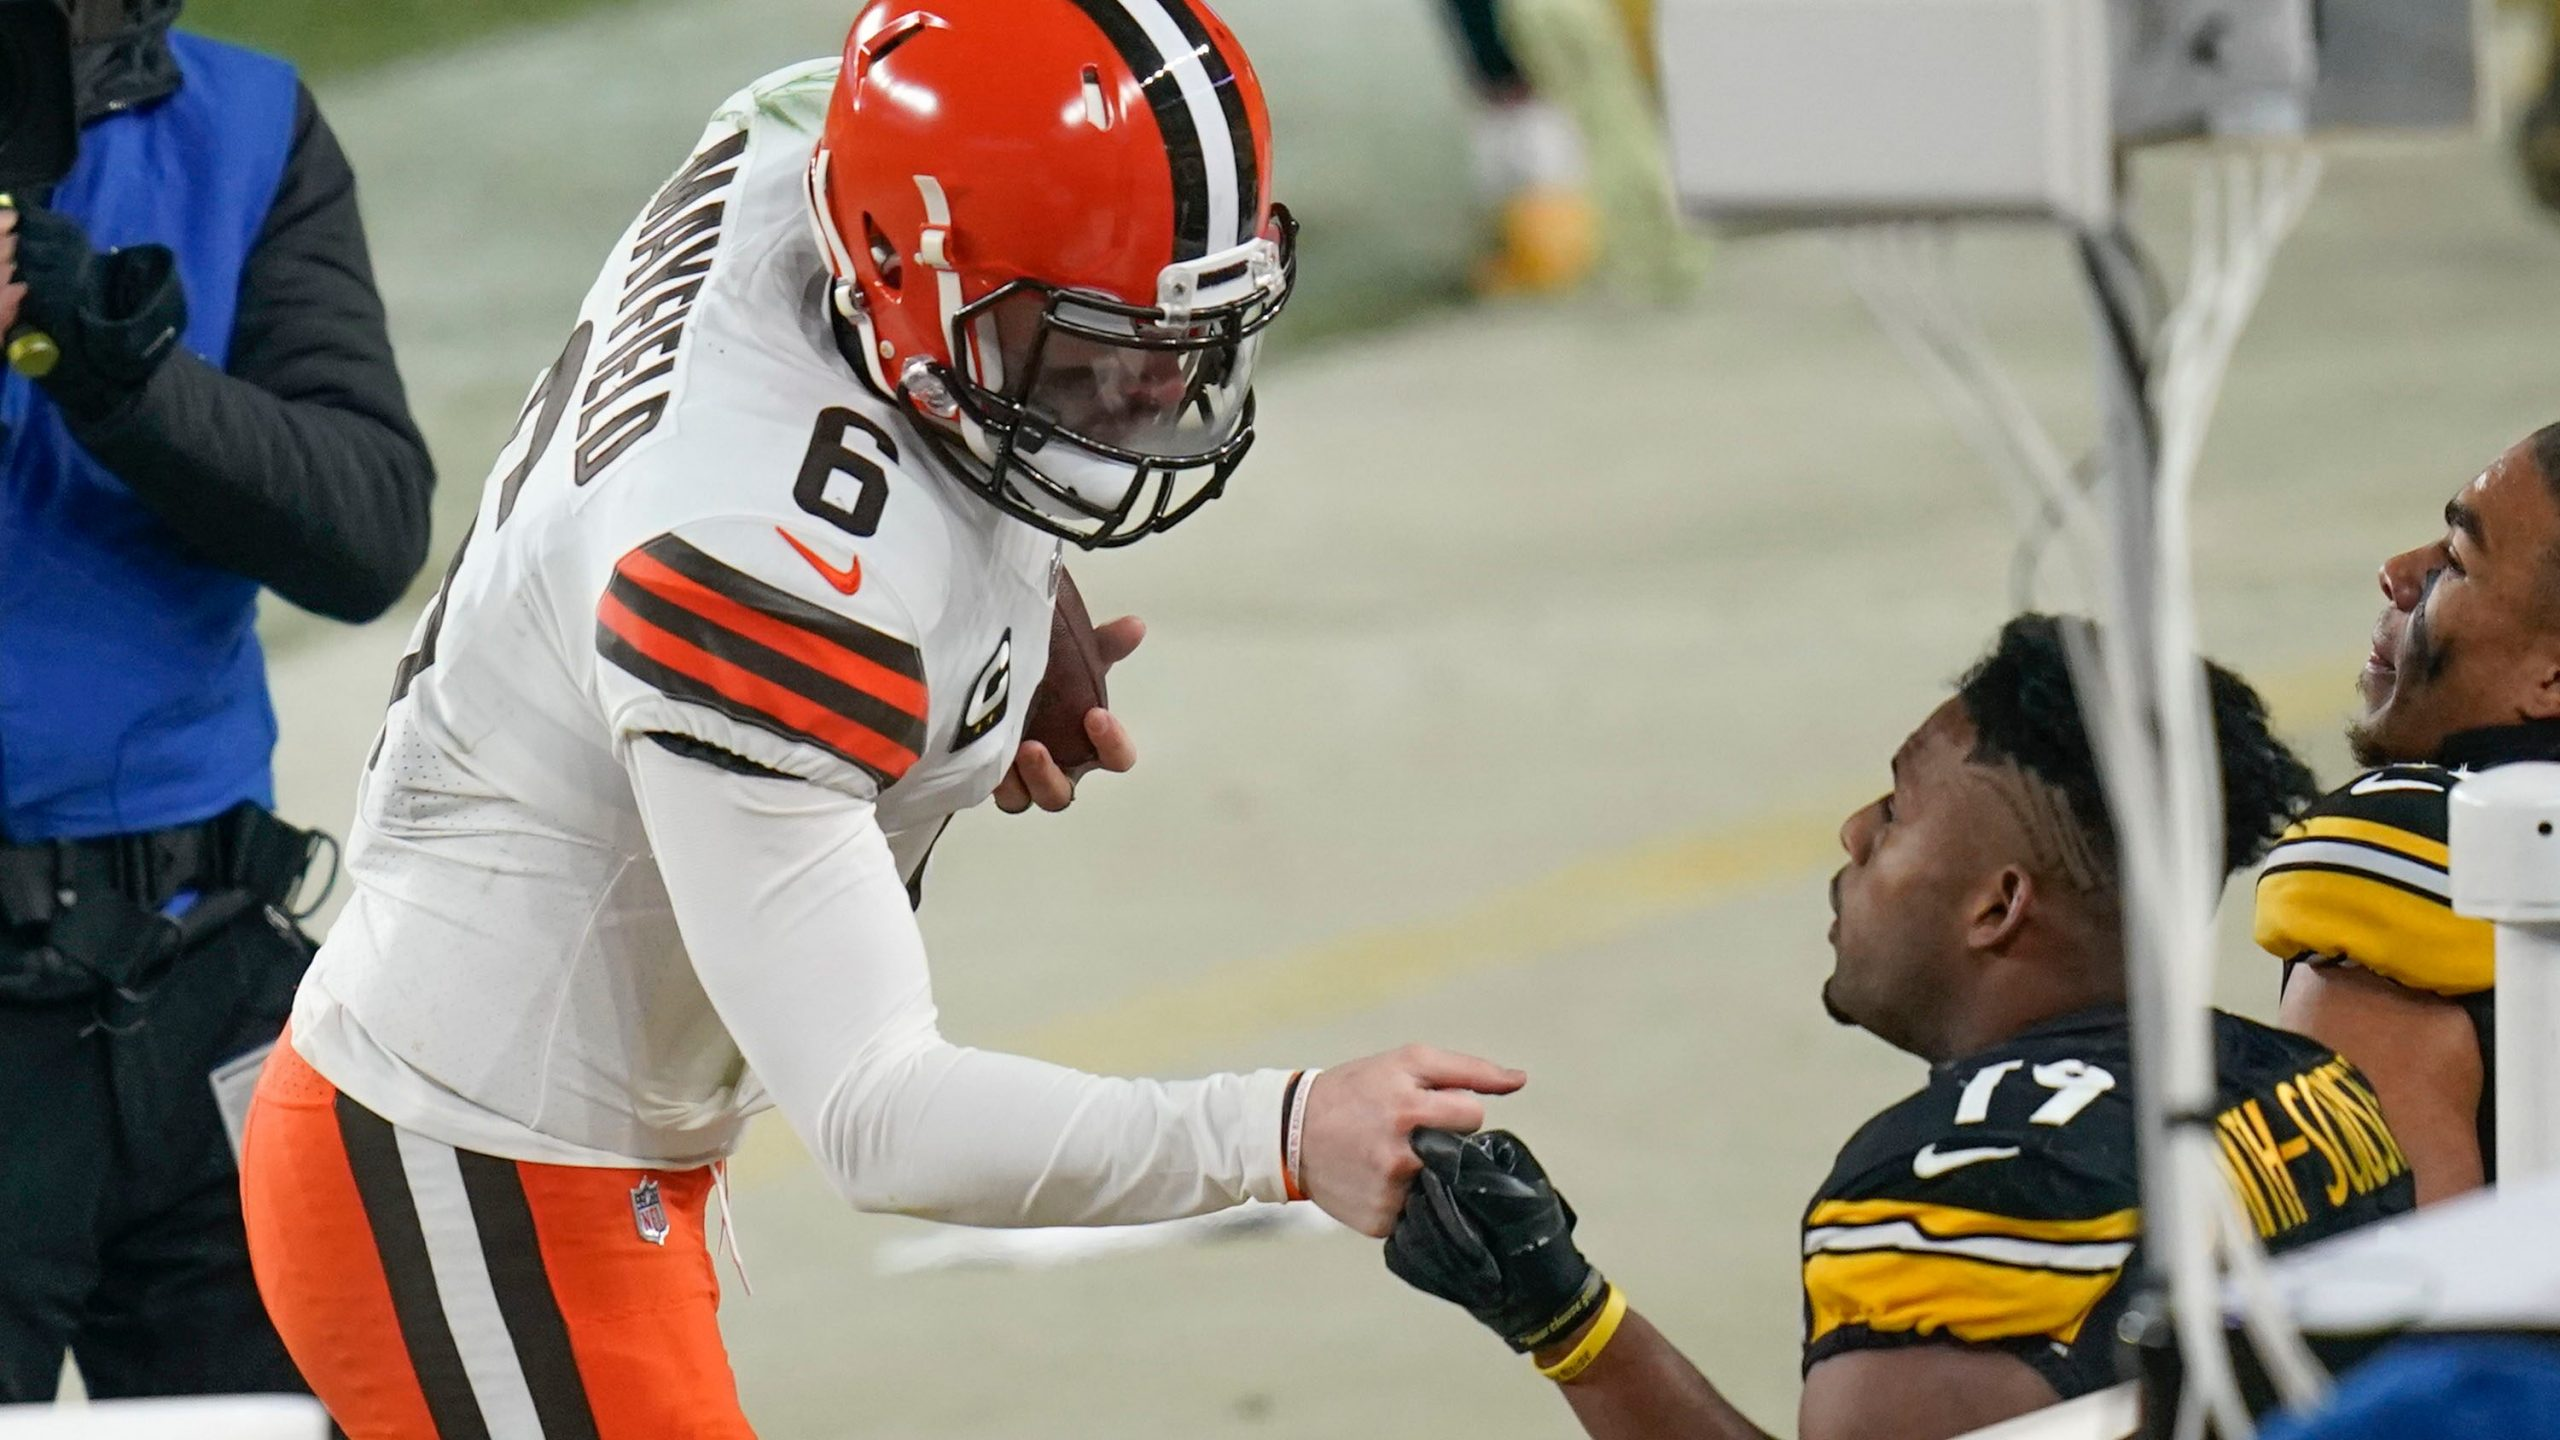 """The Steelers' JuJu Smith-Schuster stands next to the comment """"The Browns is the Browns"""" after losing the wild card"""